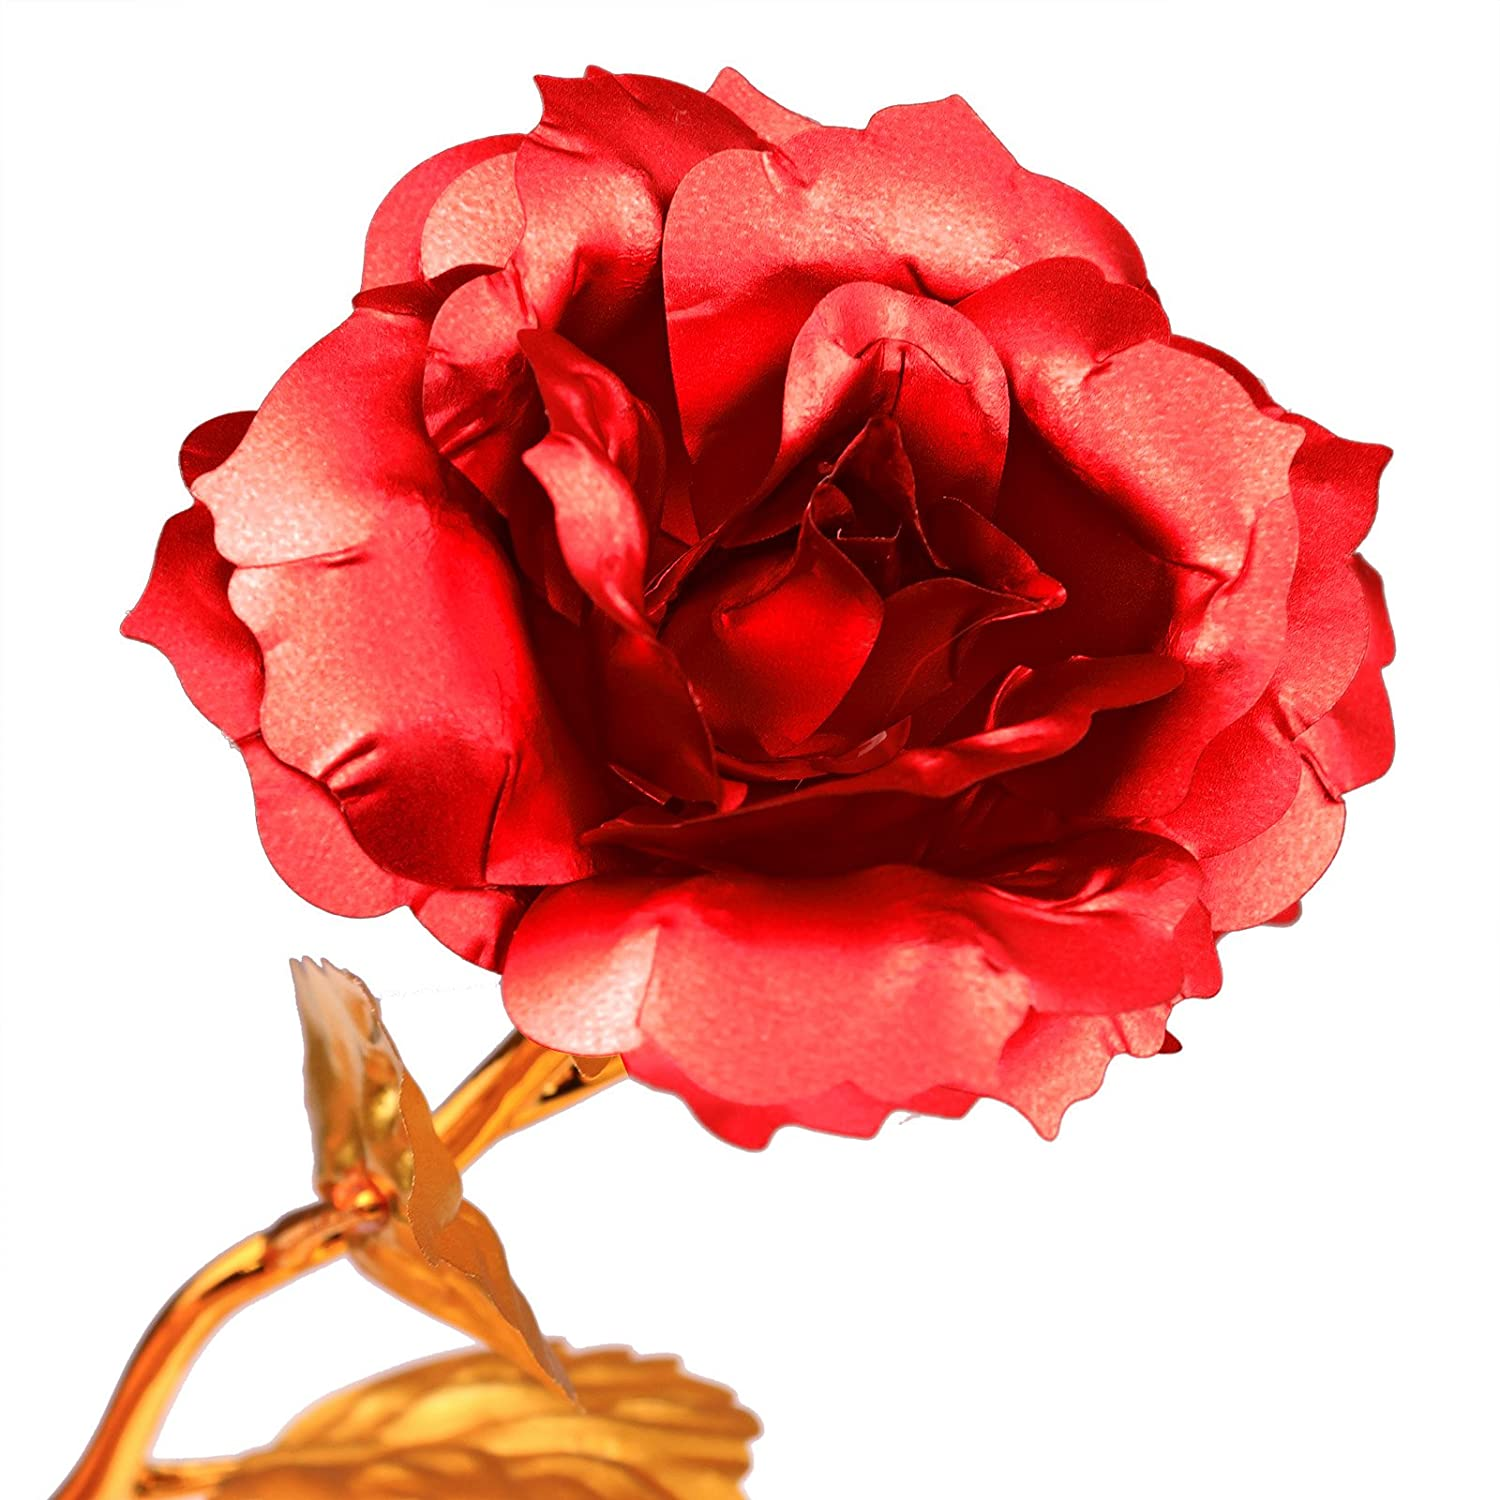 Red Lemonbest 24K Gold Plated Rose Flower with Transparent Stand Best Gift for Lover Valentines Day Mothers Day Birthday Rose Flower